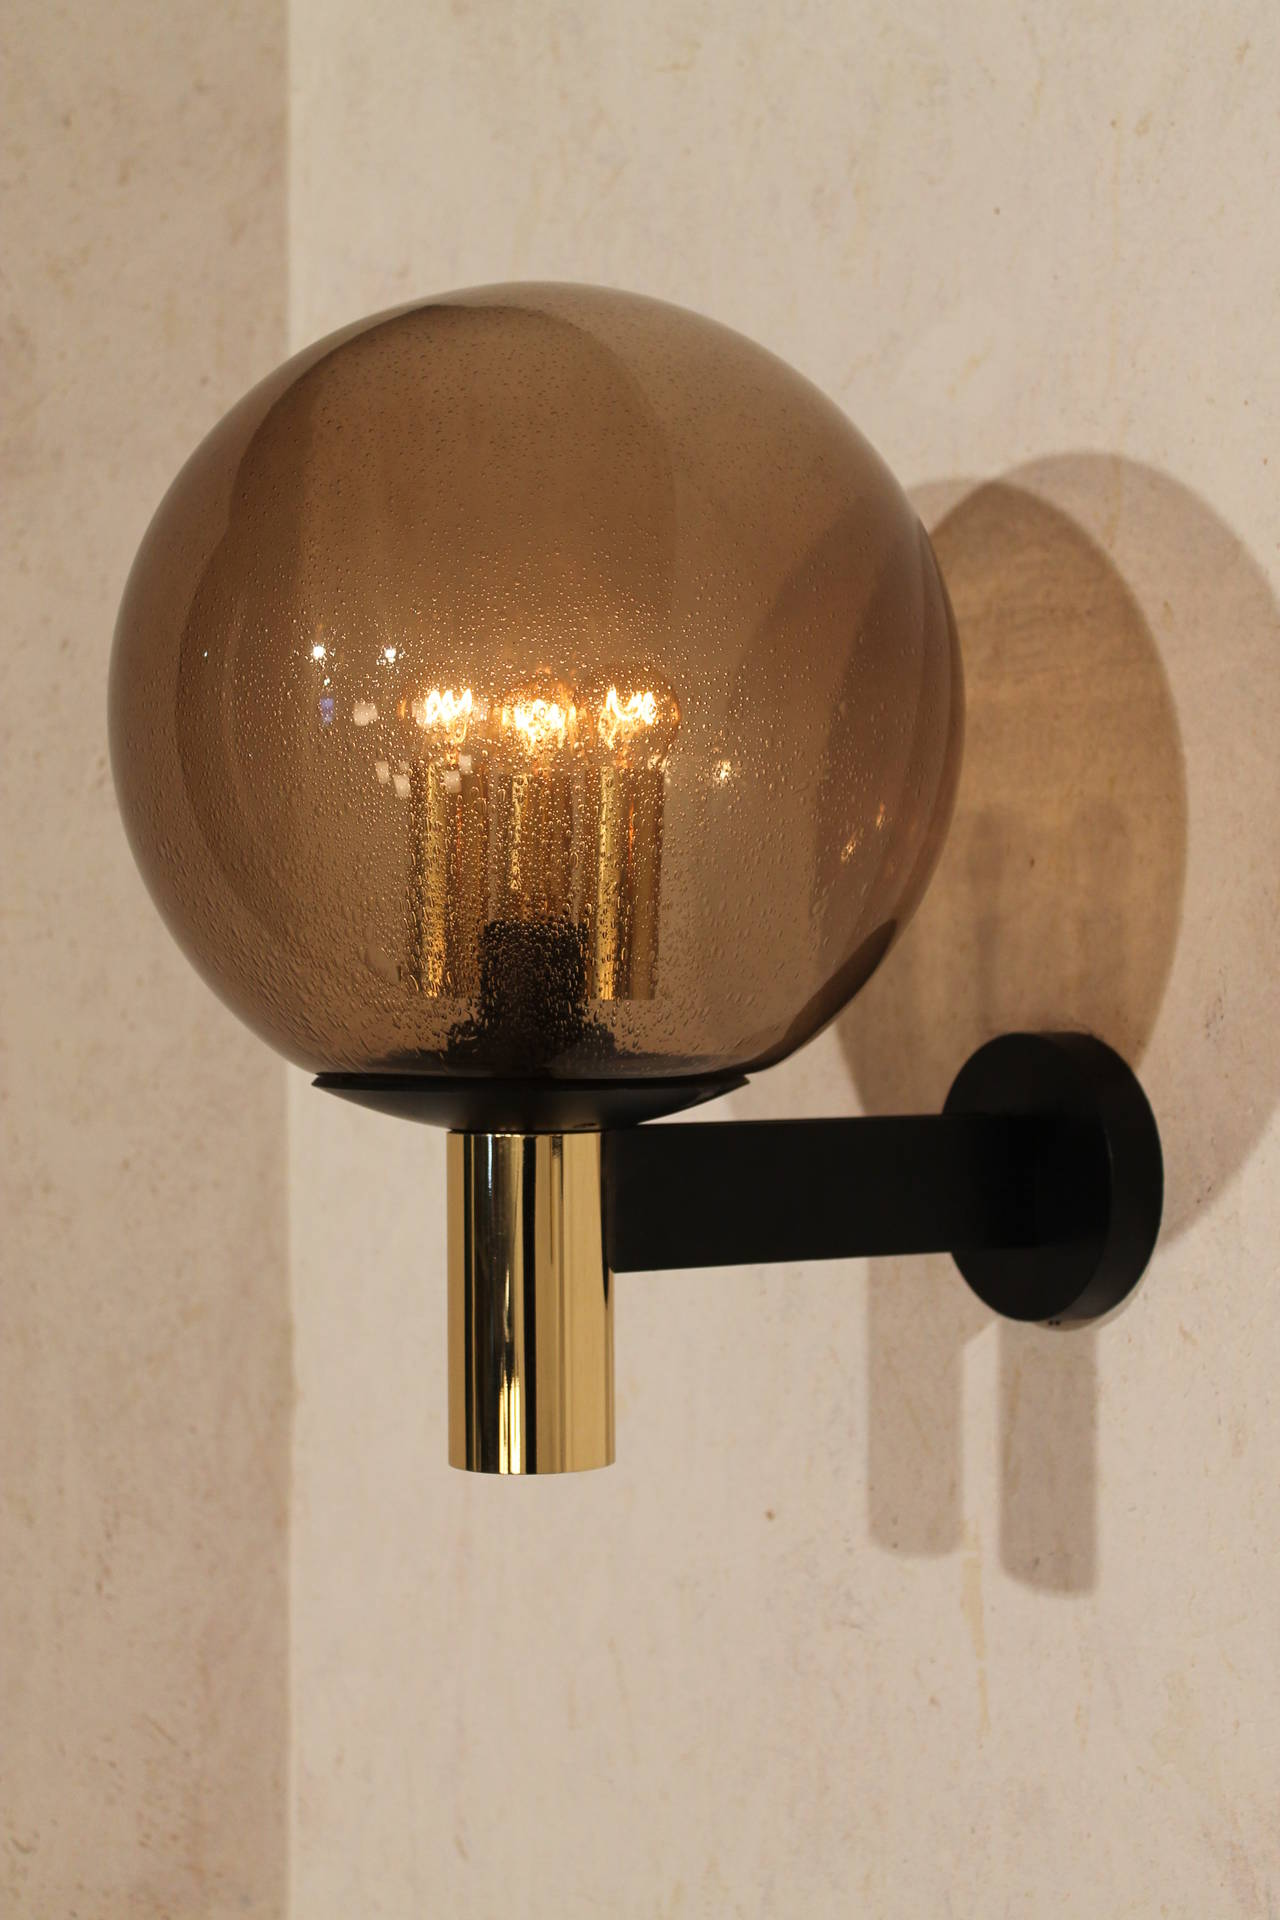 Eight Extra-Large Wall Sconces Smoked Glass with Brass Details, 1970s at 1stdibs